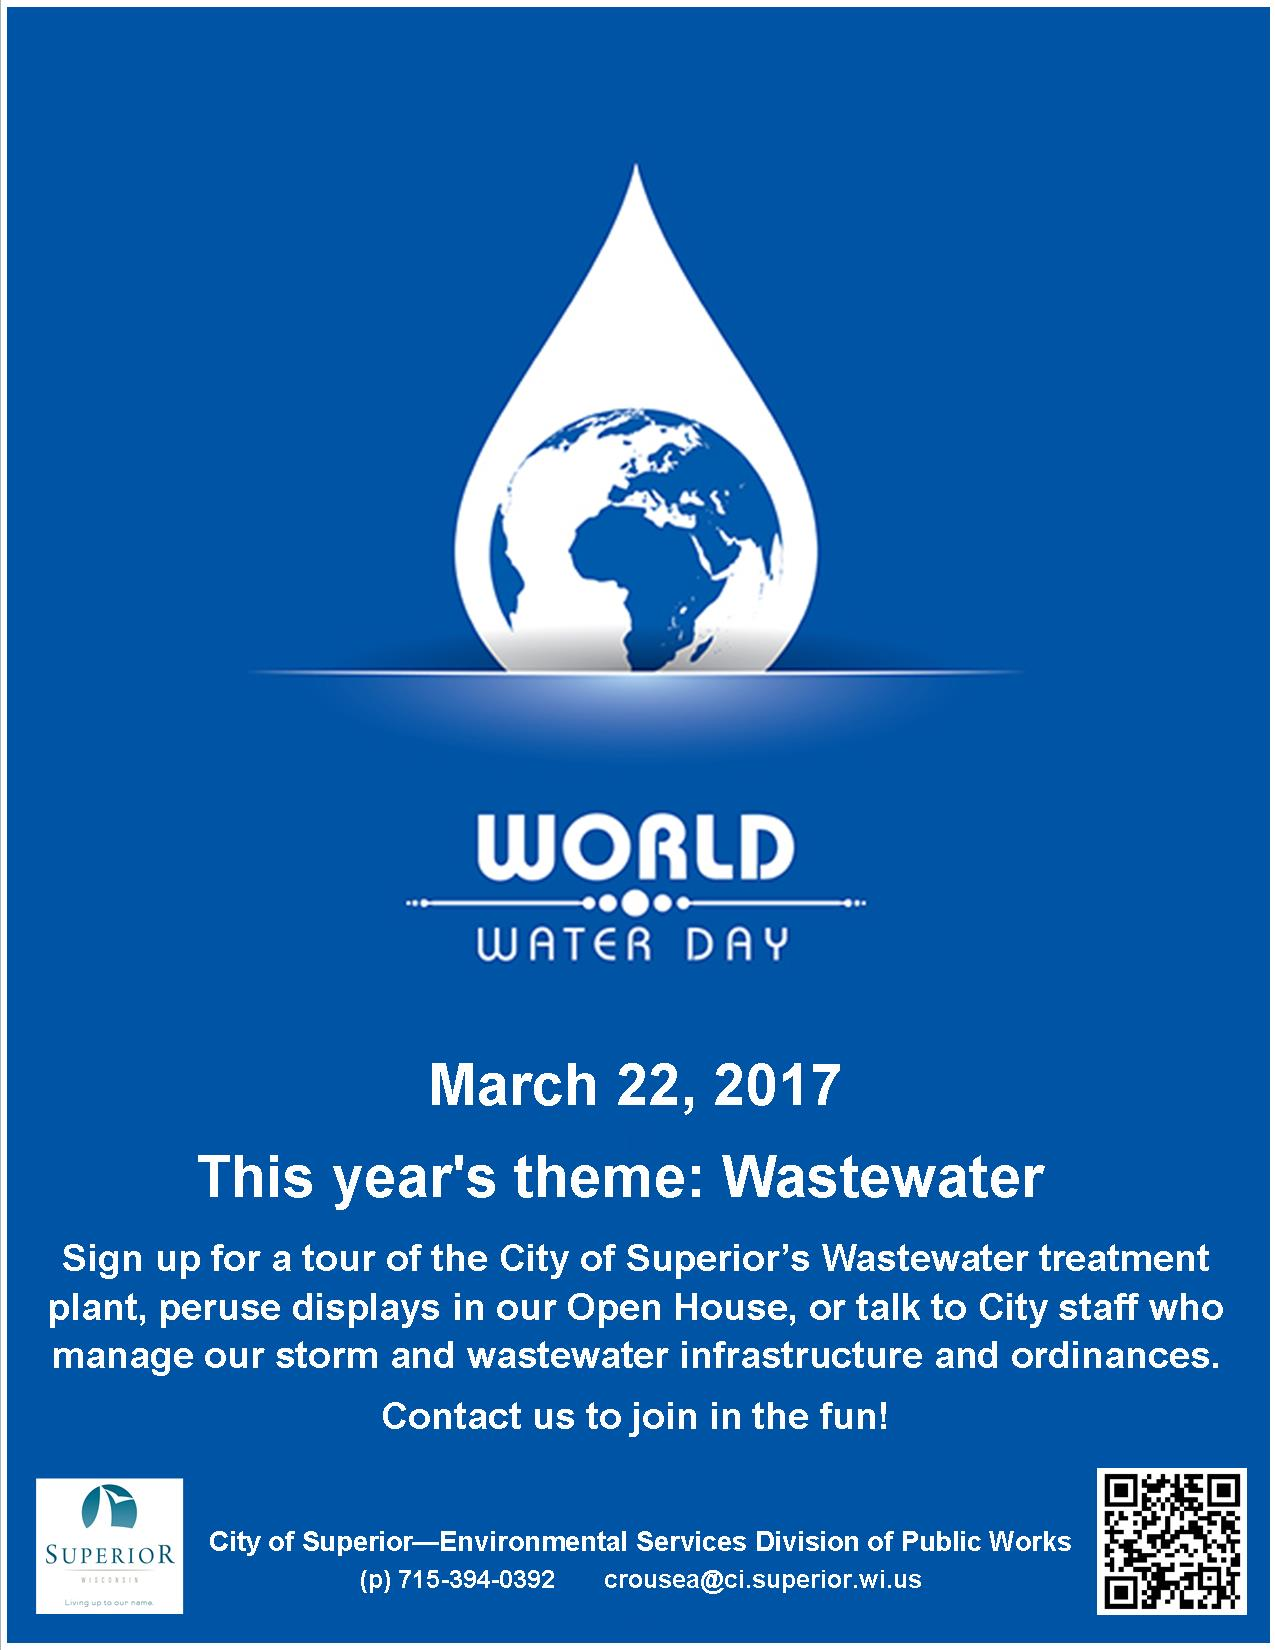 WorldWaterDay2017.jpg